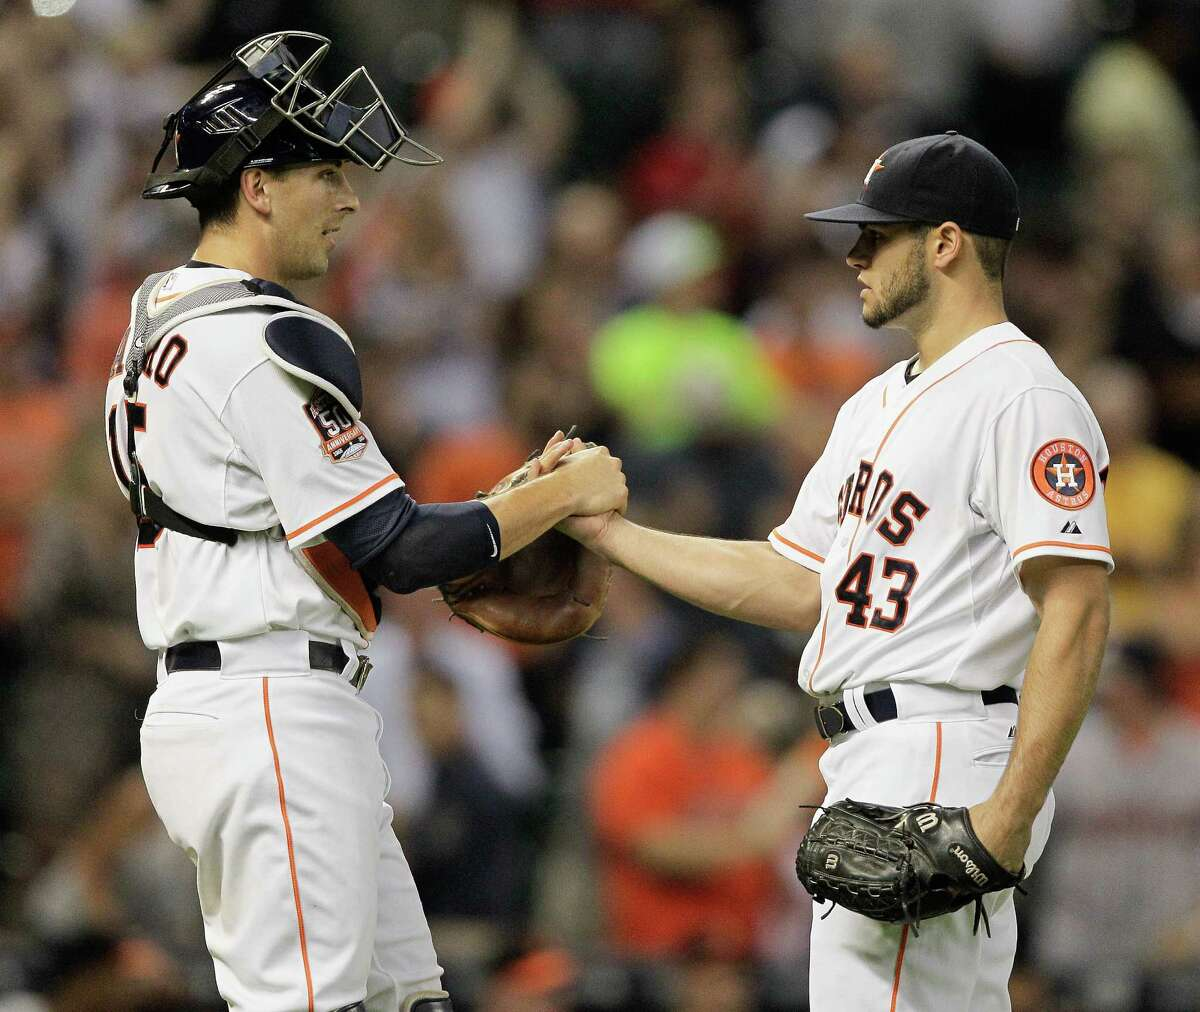 Astros rookie righthander Lance McCullers, right, receives congratulations for his first complete-game performance since his high school days from catcher Jason Castro on Wednesday night at Minute Maid Park.